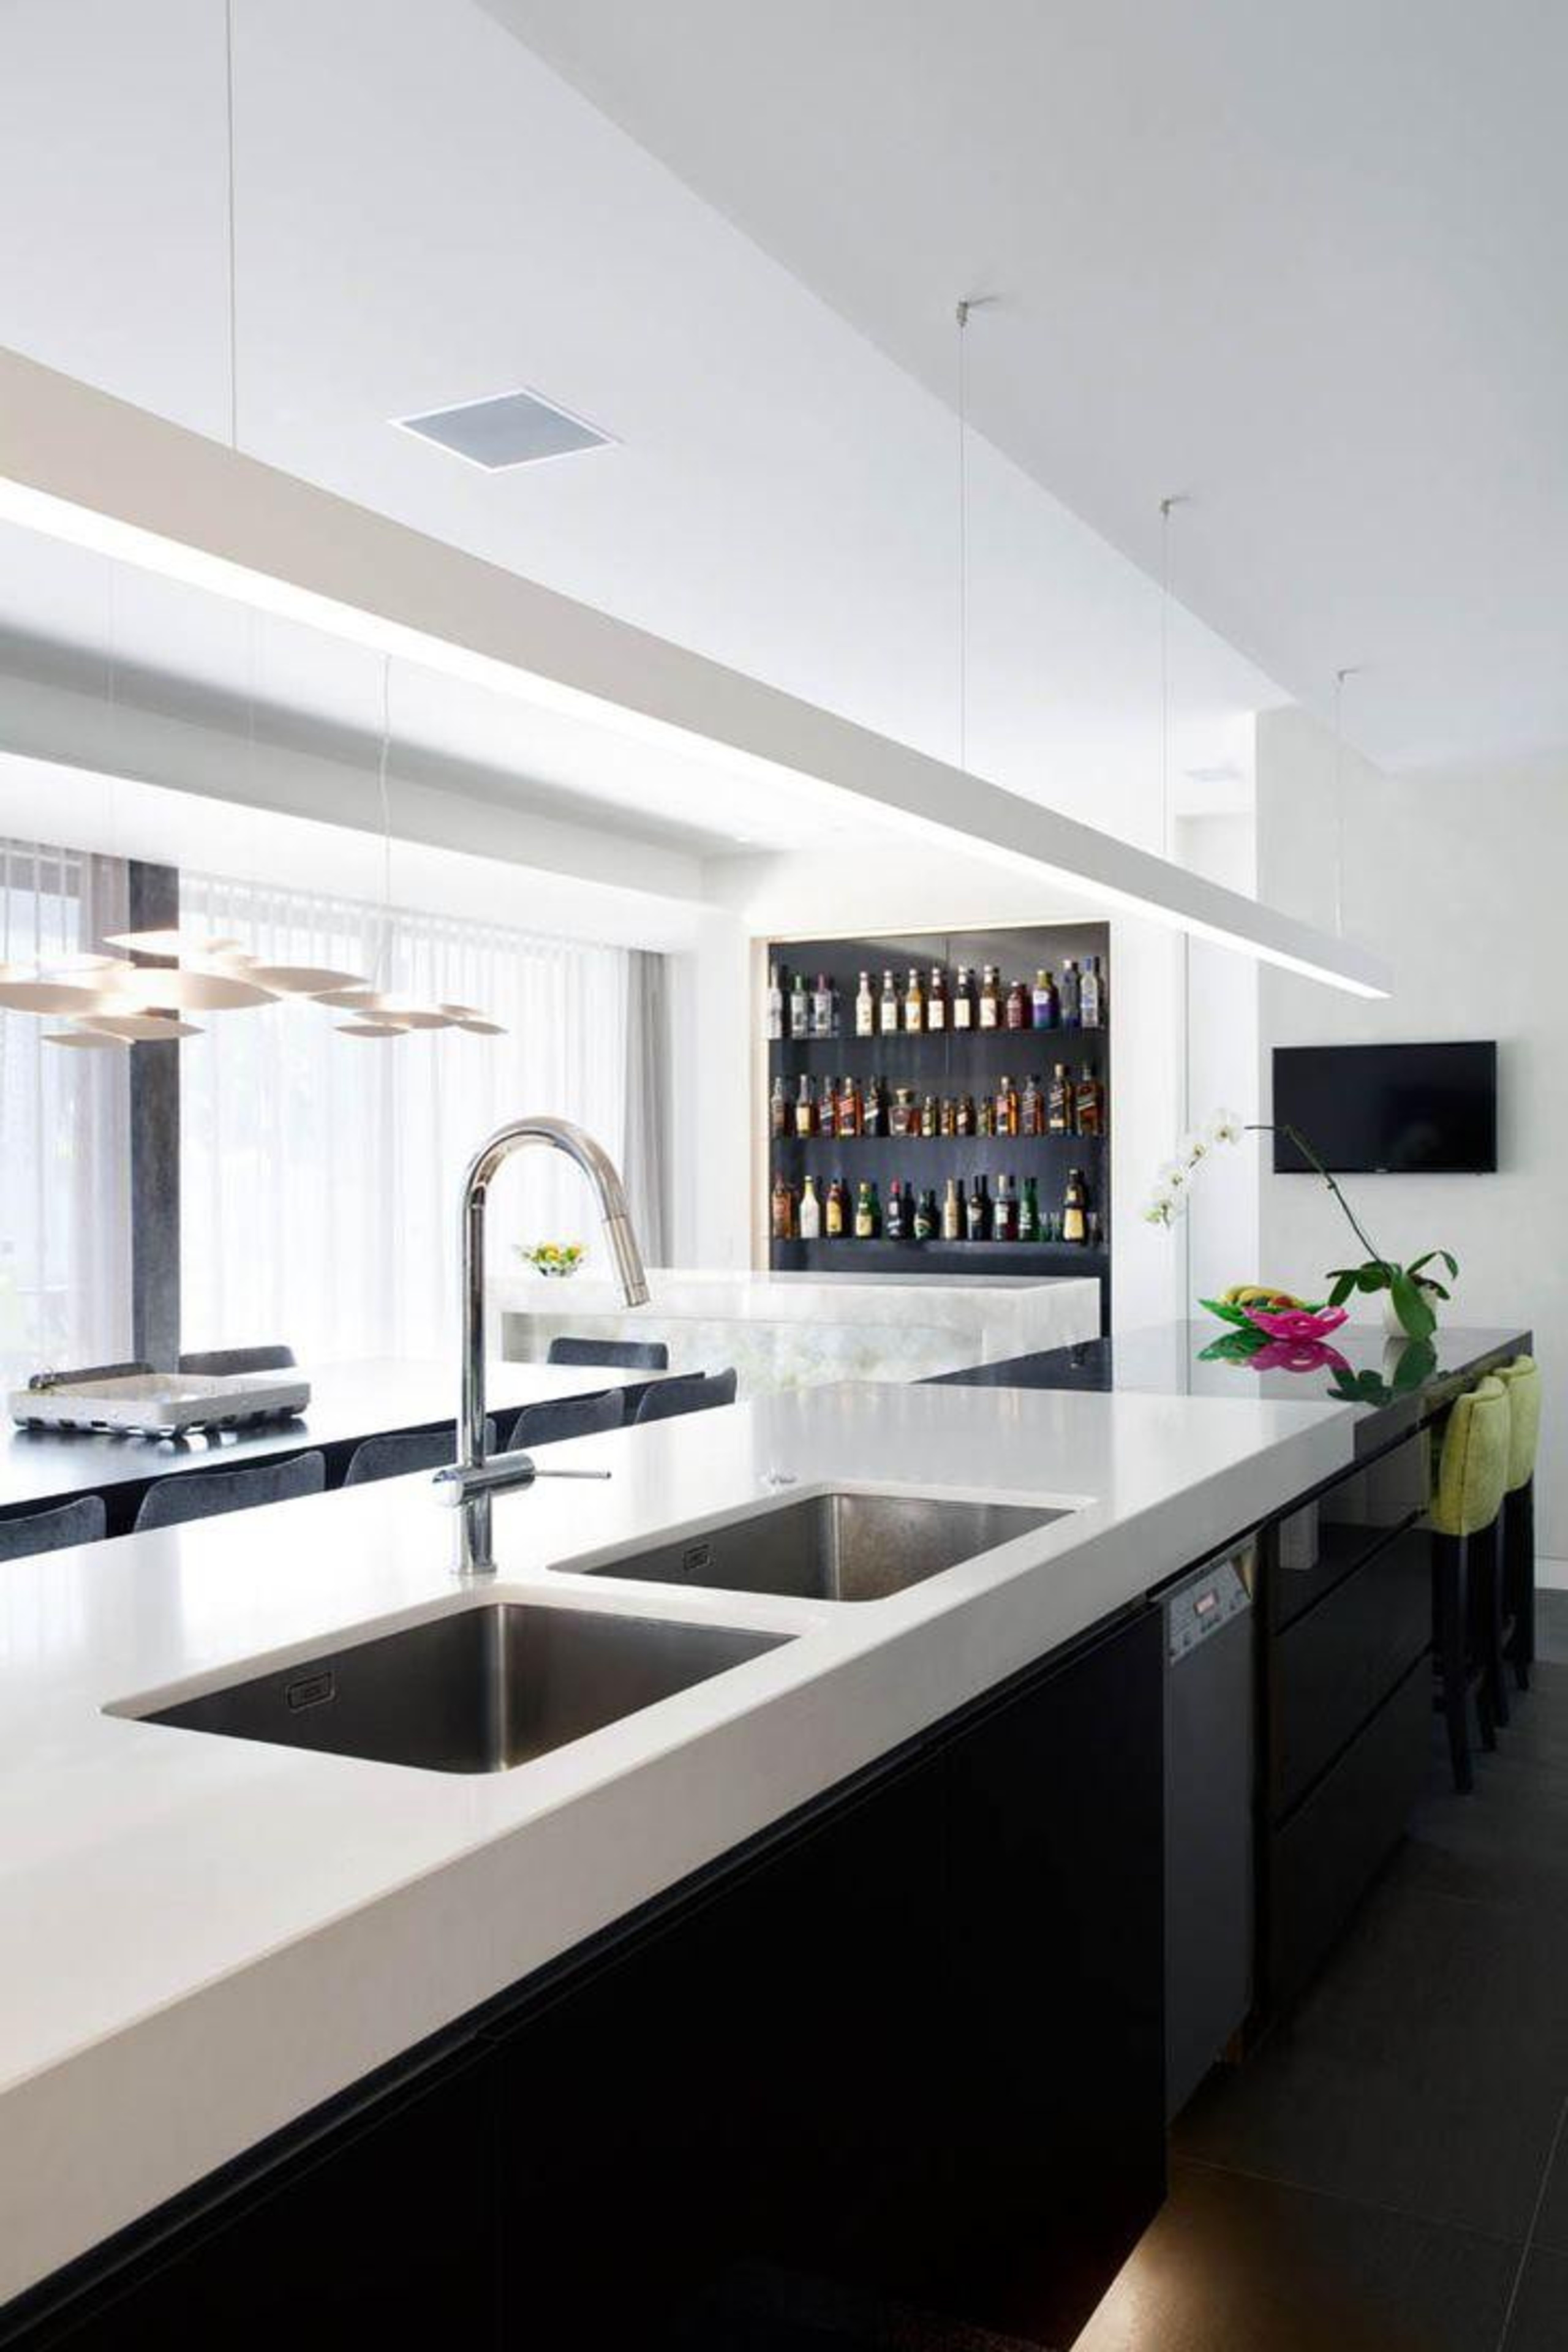 Touch Wood Cabinetry - Snow™ - countertop | countertop, interior design, kitchen, product design, white, black